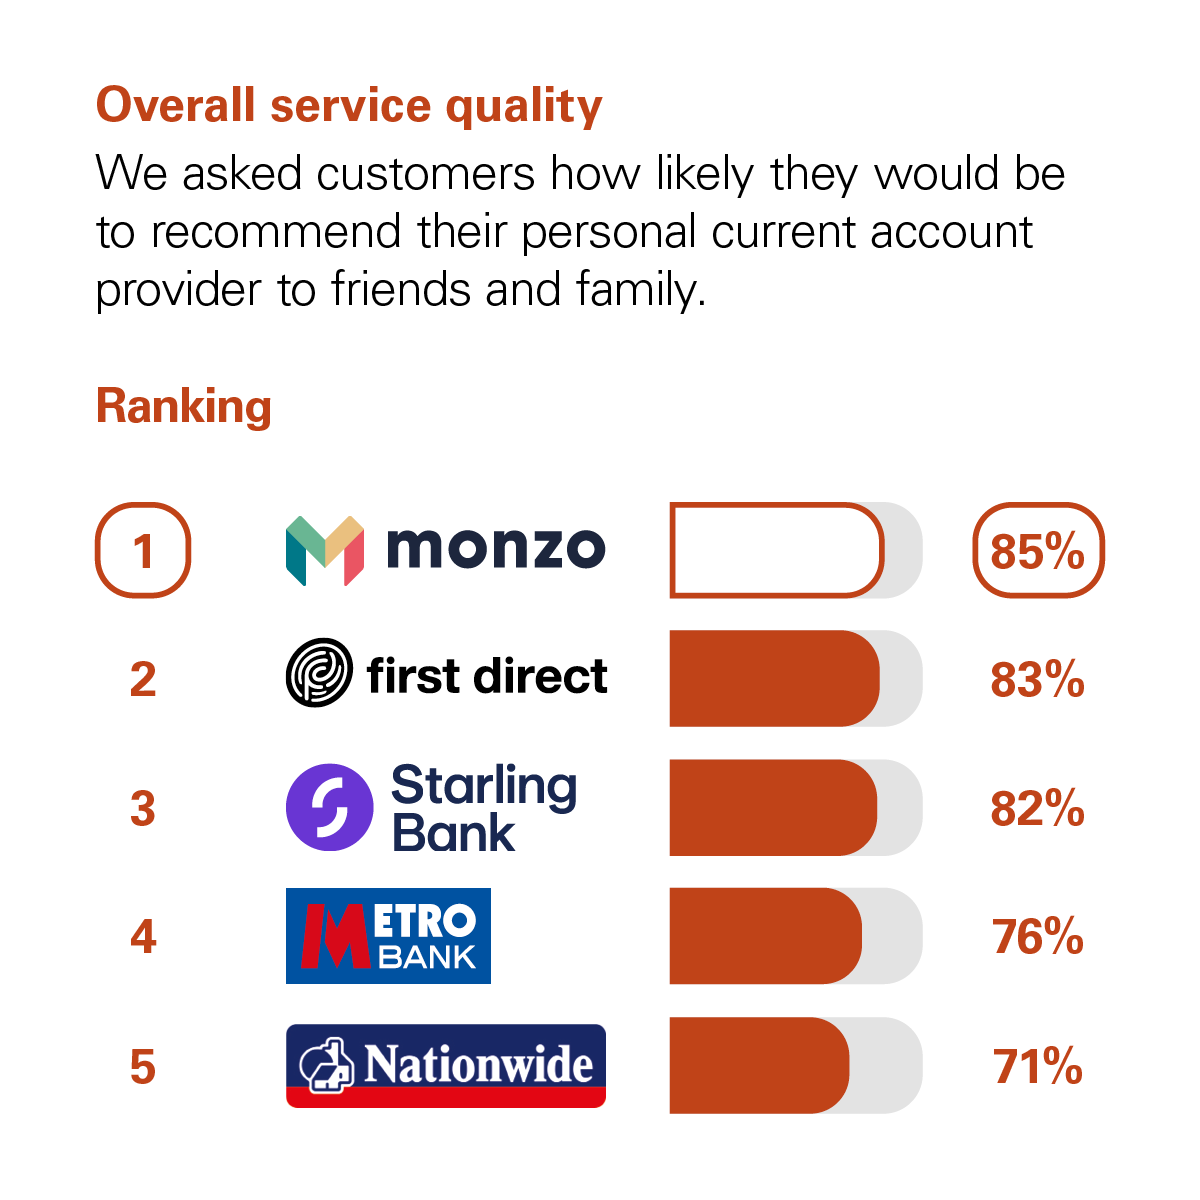 Graph showing the results of the CMA scoring of UK banks in the Overall Service Quality category. The CMA asked customers how likely they would be to recommend their personal current account provider to friends and family. The rankings with percentage scores are: 1 Monzo, with 85%. 2 First Direct, with 83%. 3 Starling, with 82%. 4 Metro Bank, with 76%. 5 Nationwide, with 71%.